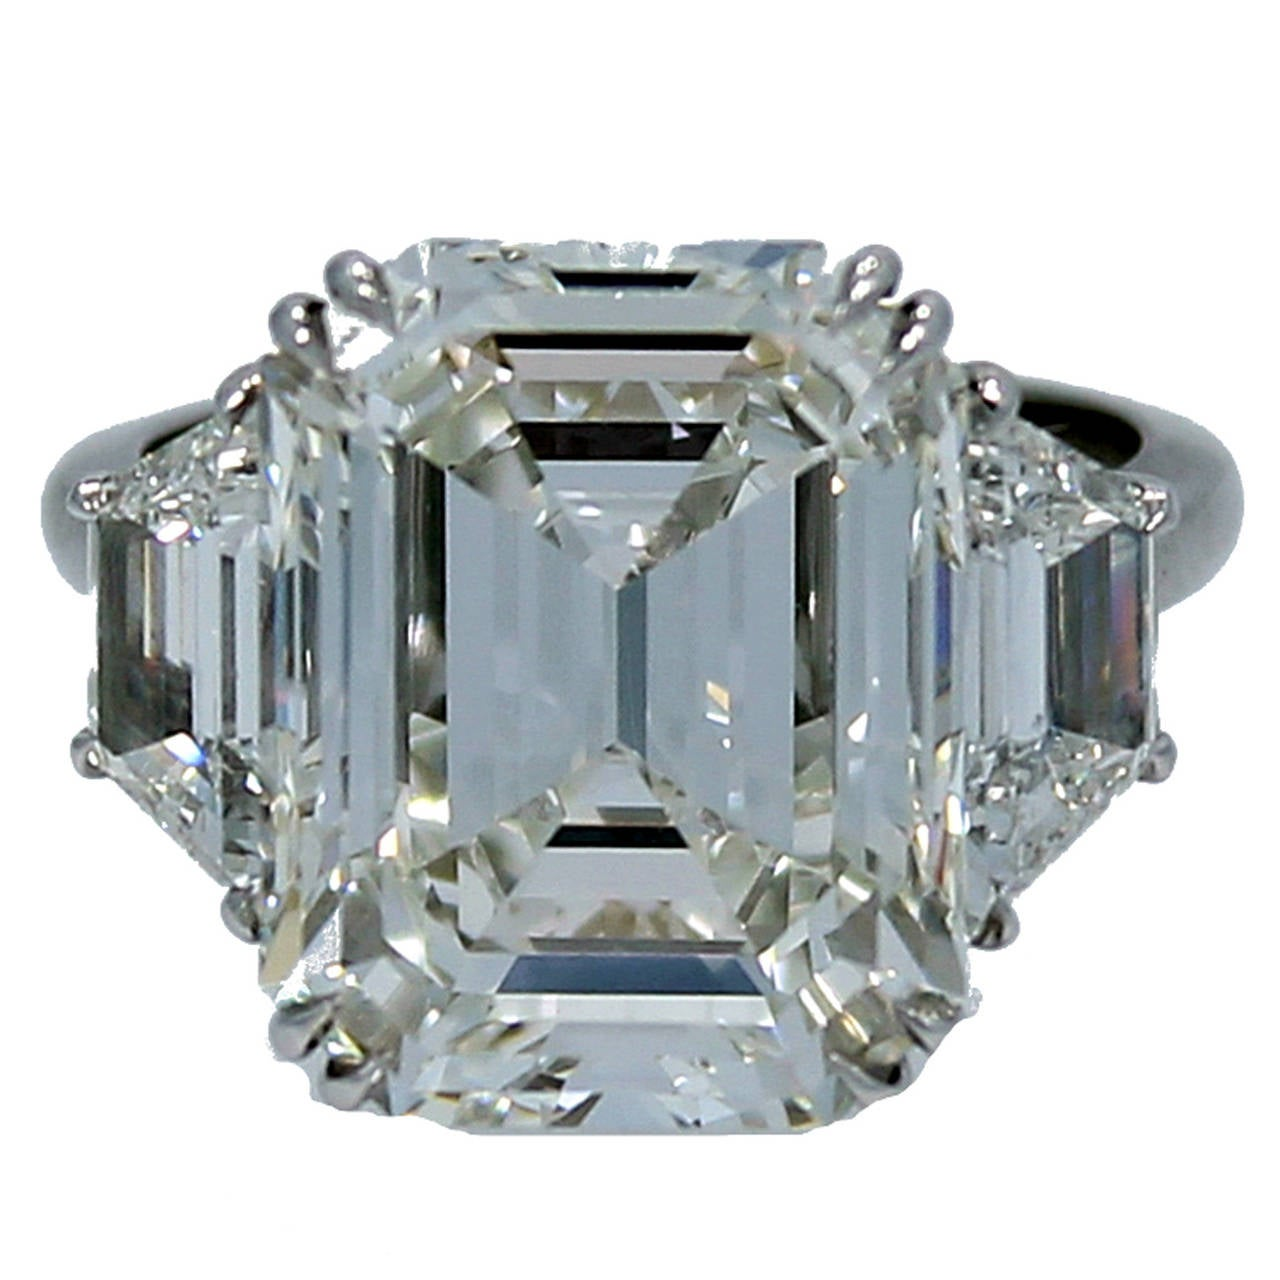 10.07 Carat GIA Report Emerald Cut Diamond Platinum Engagement Ring